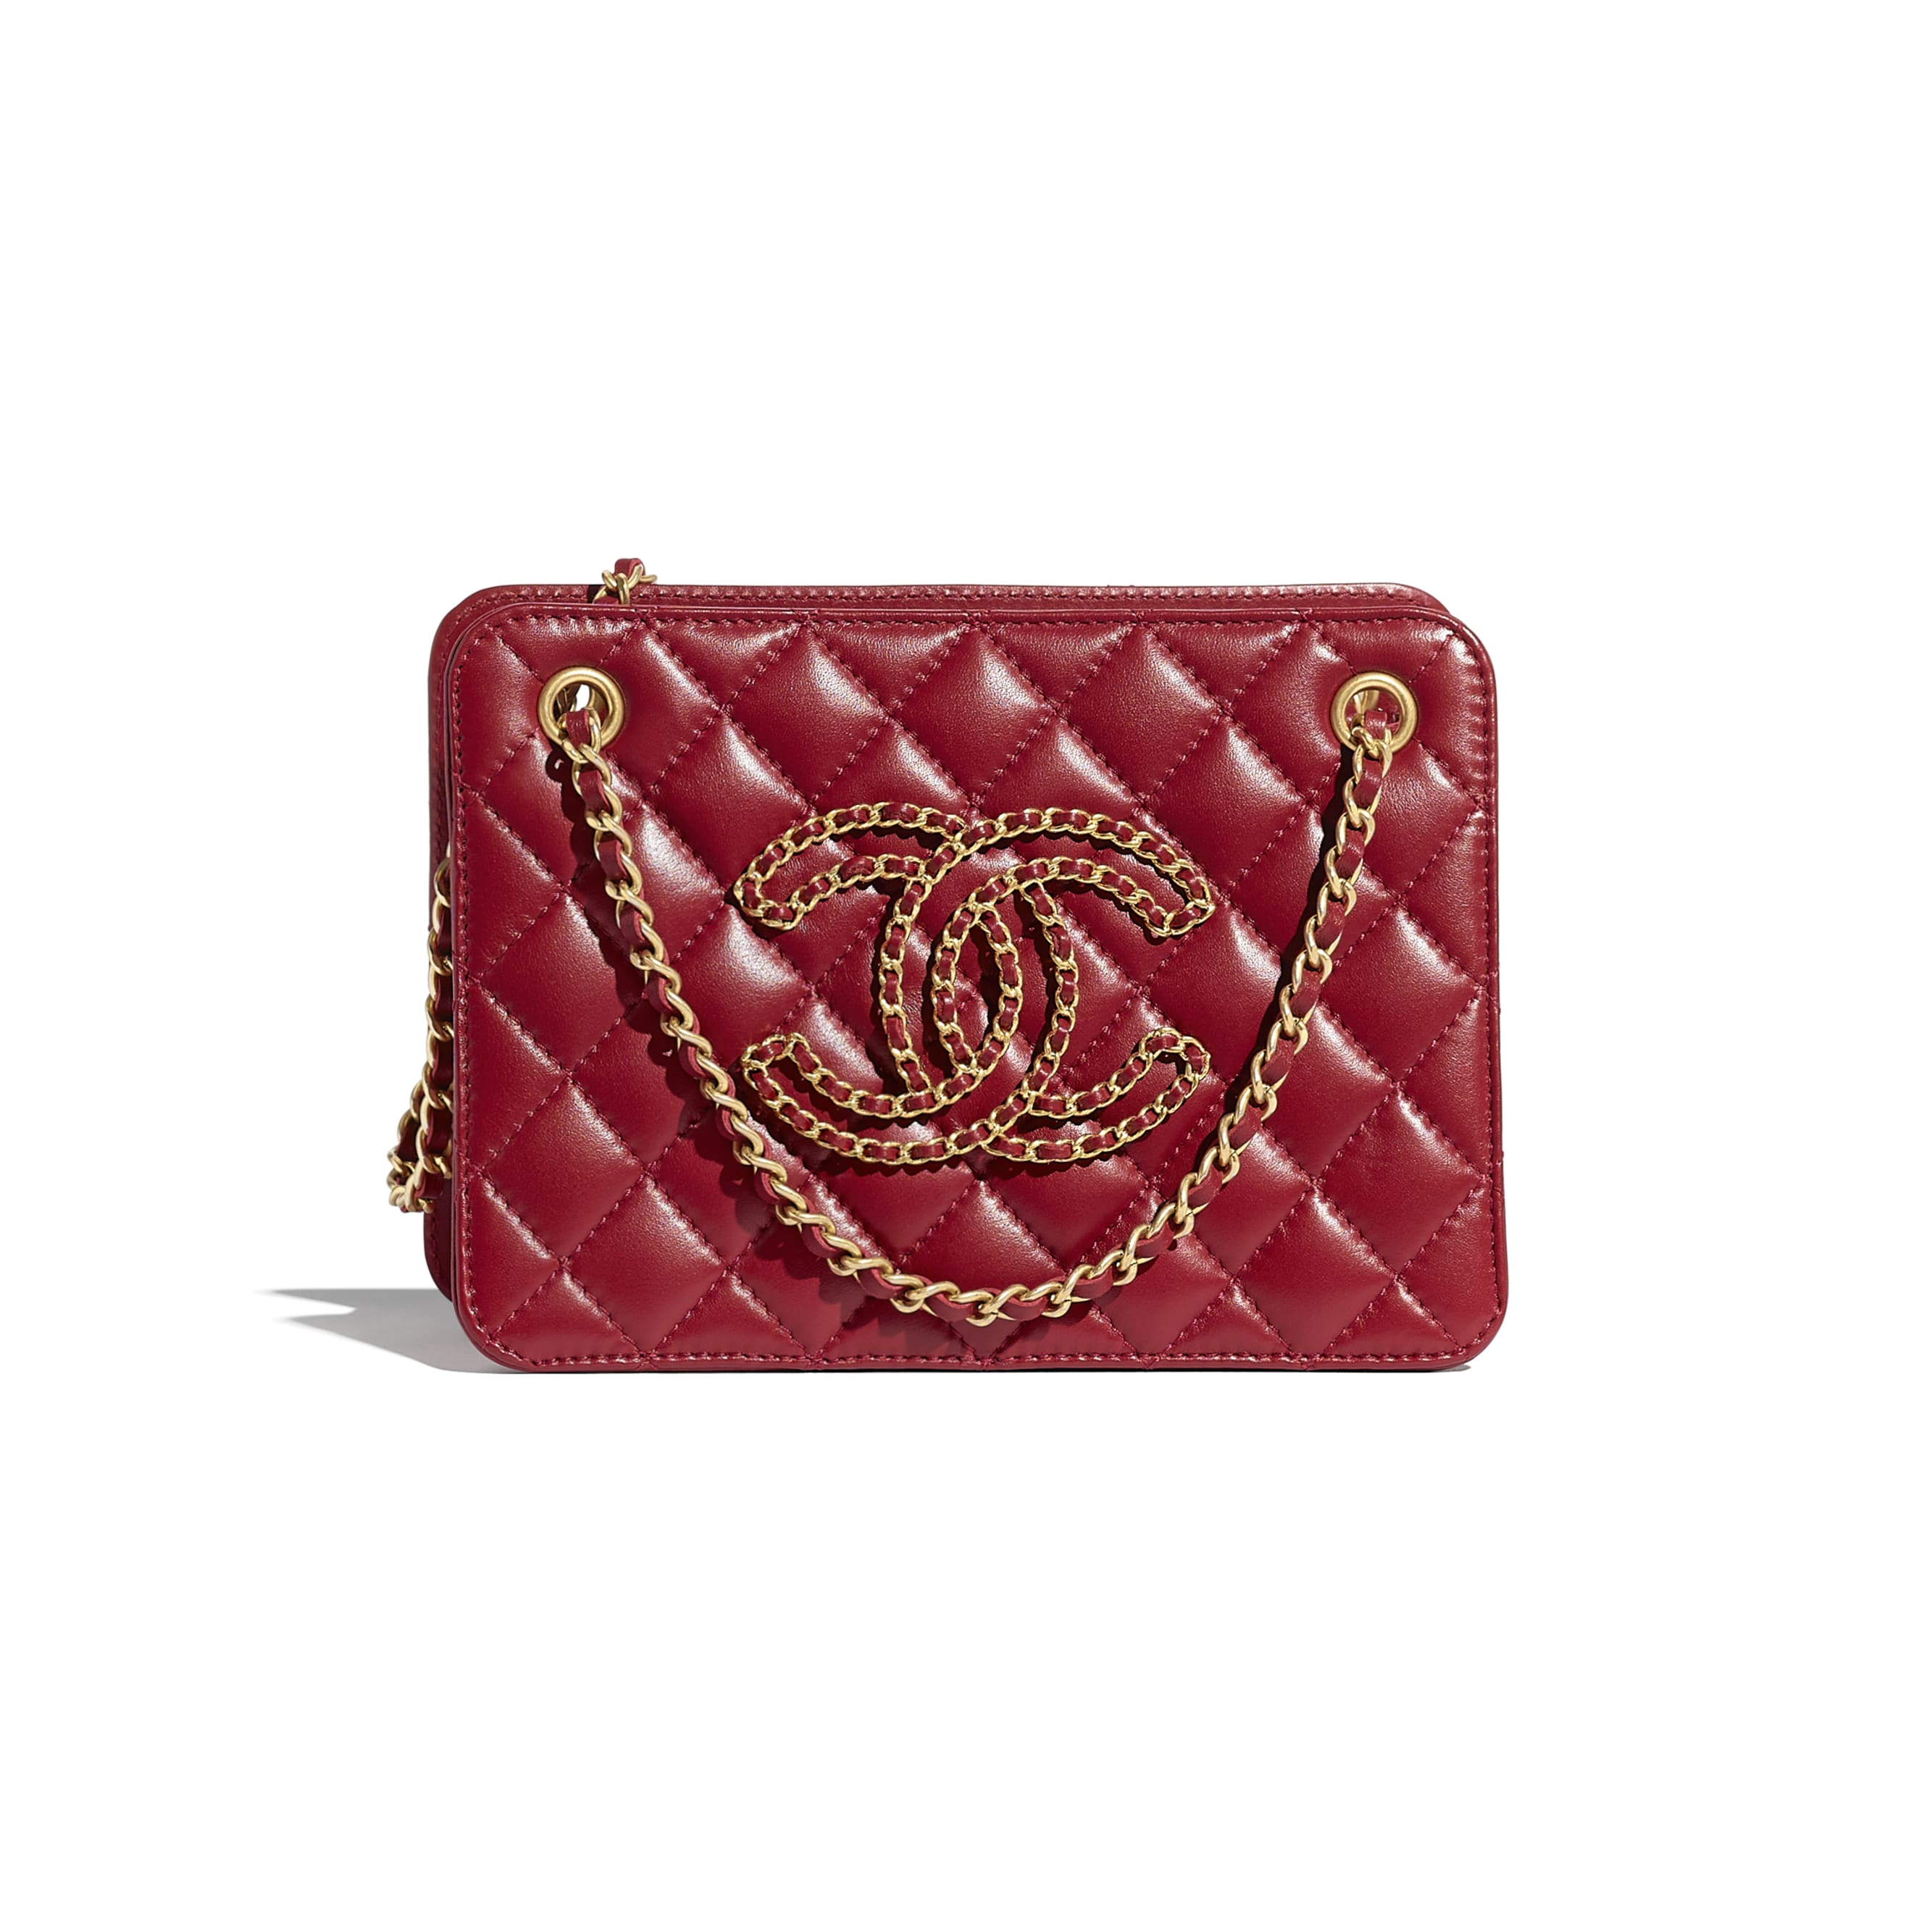 Small Accordion Handbag - Red - Calfskin & Gold-Tone Metal - CHANEL - Default view - see standard sized version